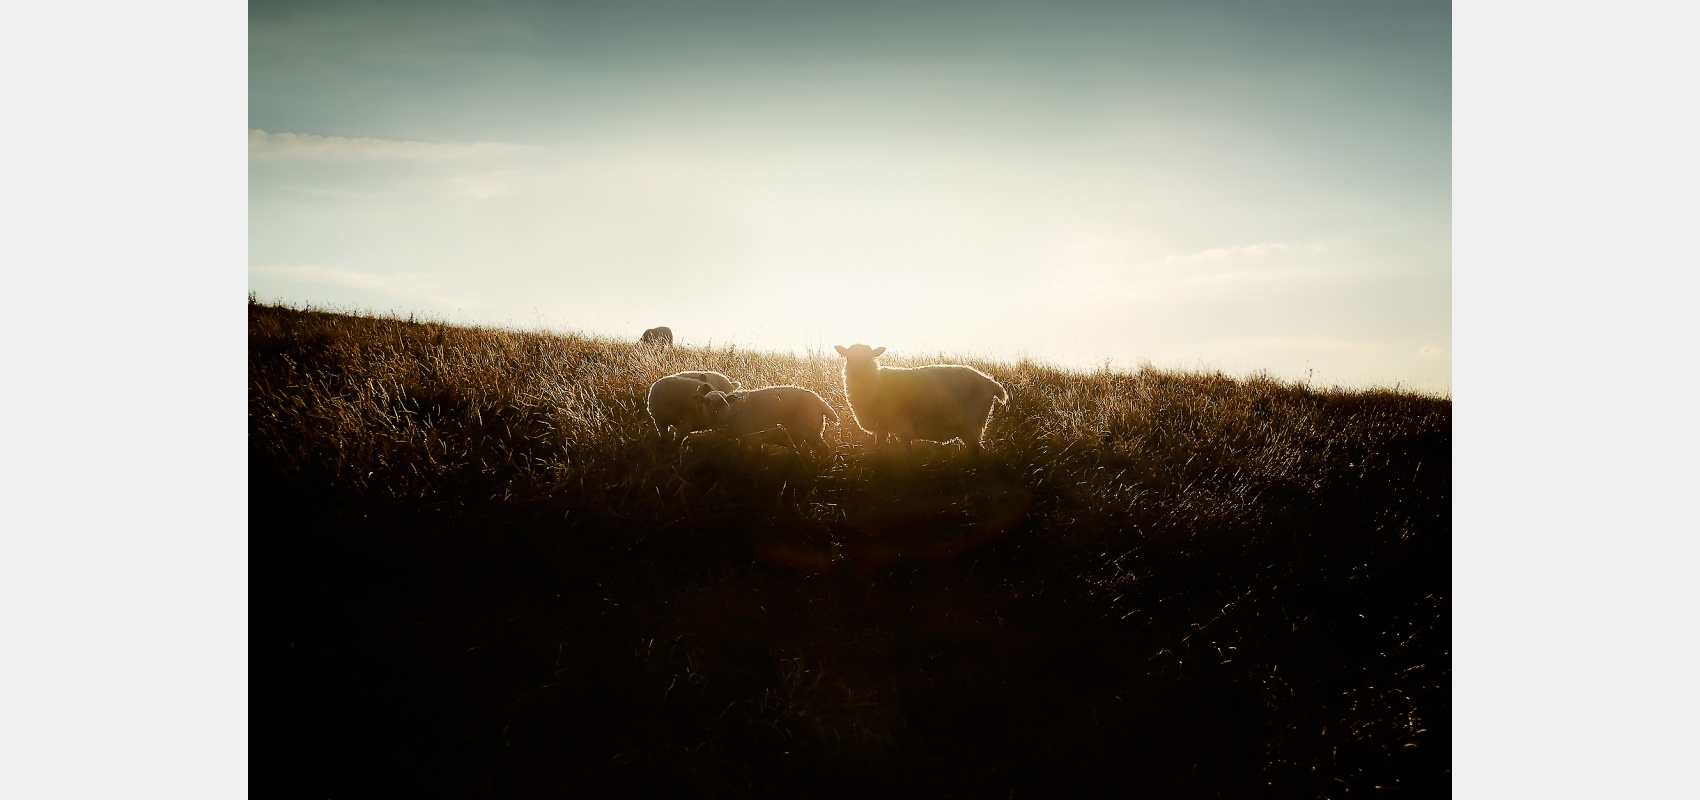 Location, landscape, sheep. lamps, silhouette, field, sunset